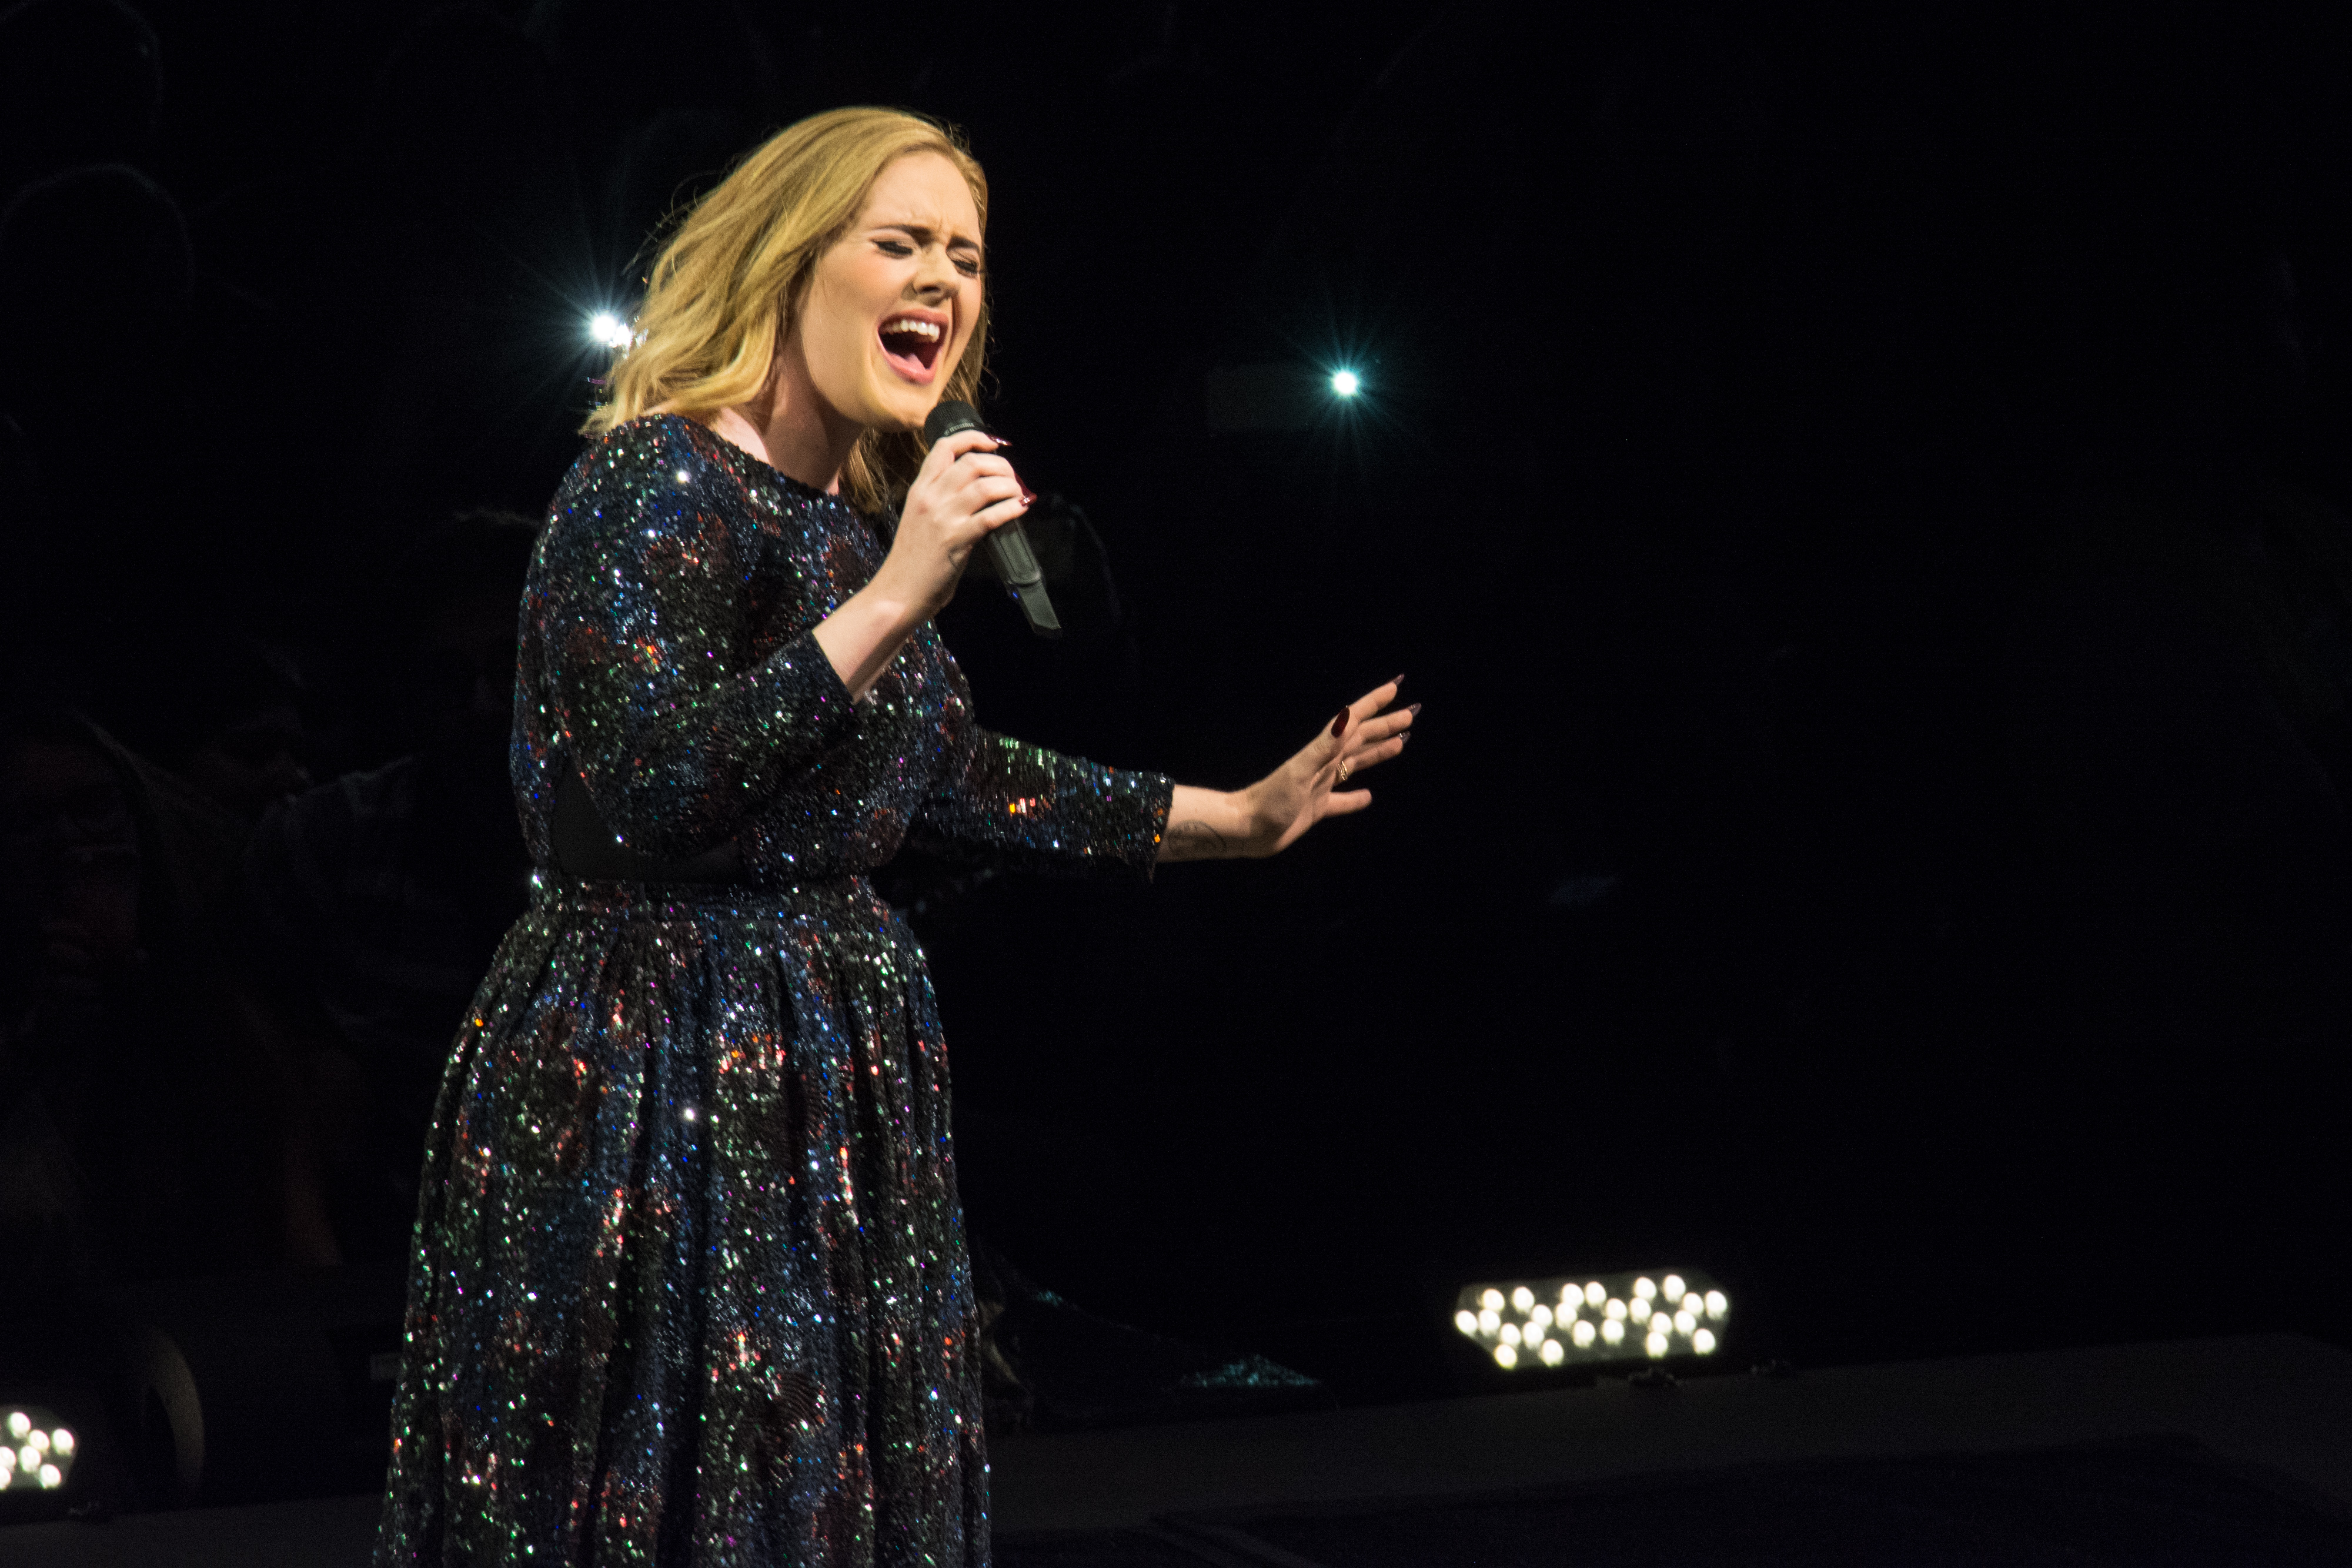 Adele pperforming on May 21, 2016 in Lisbon, Portugal.